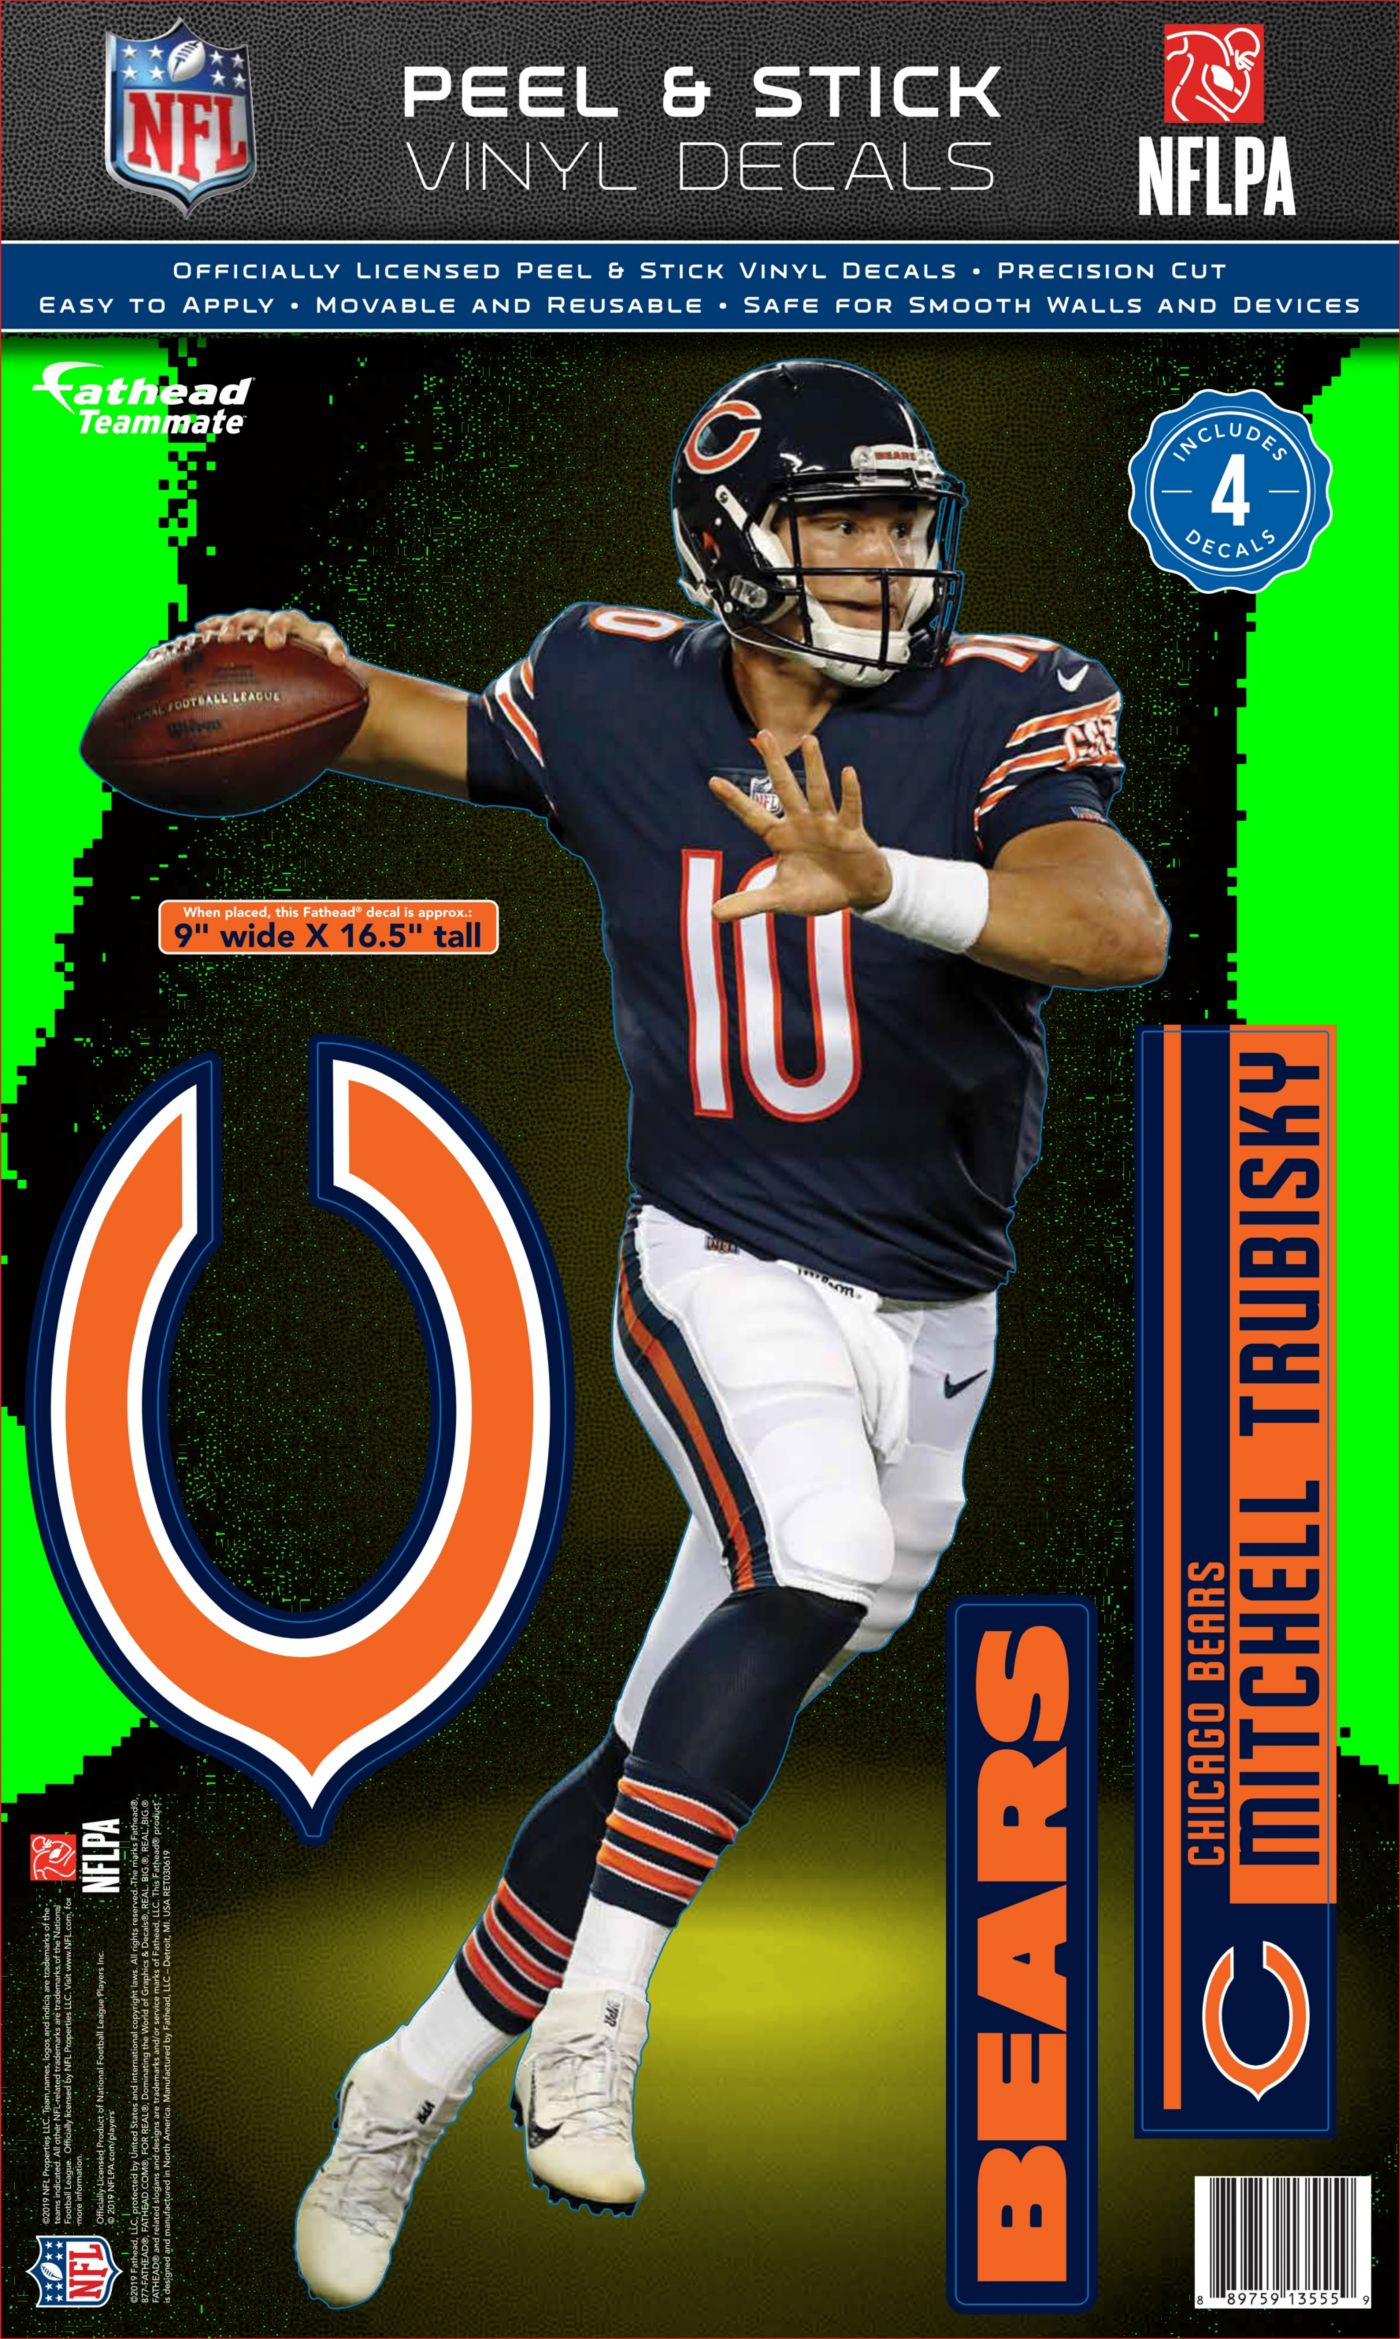 Fathead Chicago Bears Mitch Trubisky Teammate Wall Decal